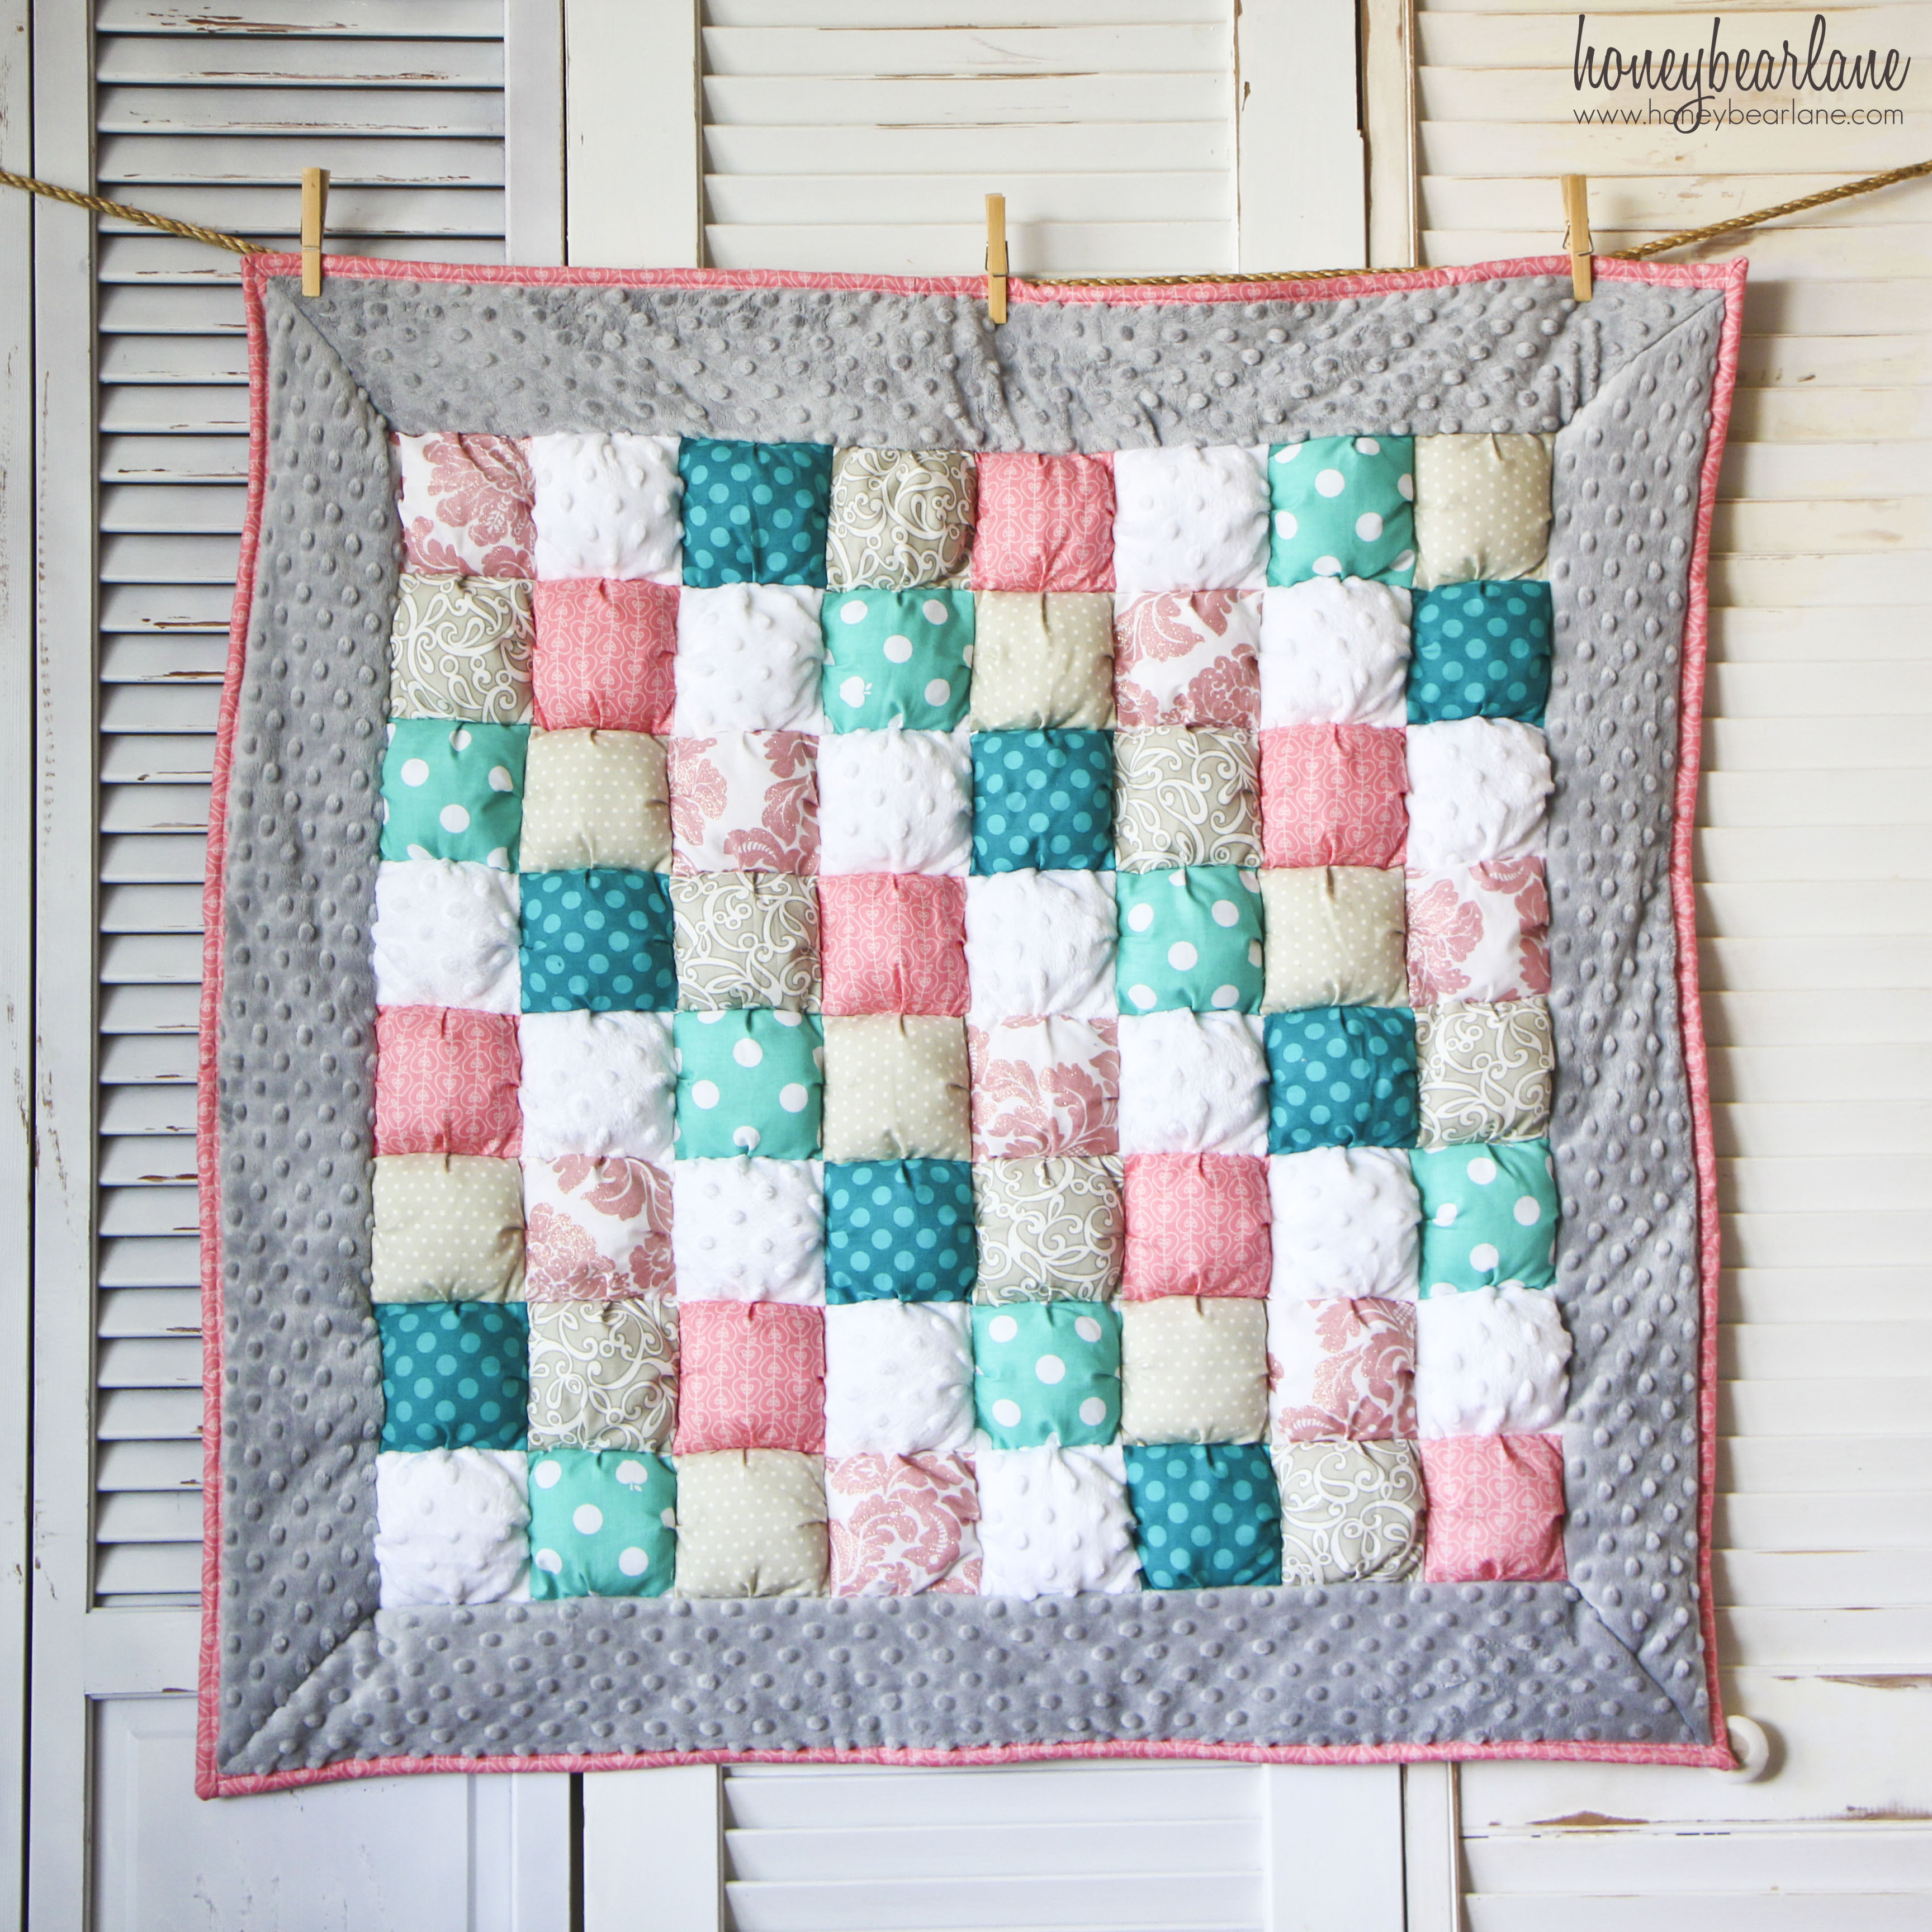 Free Pattern For Baby Puff Quilt : The Last Three Puff Quilts - Honeybear Lane